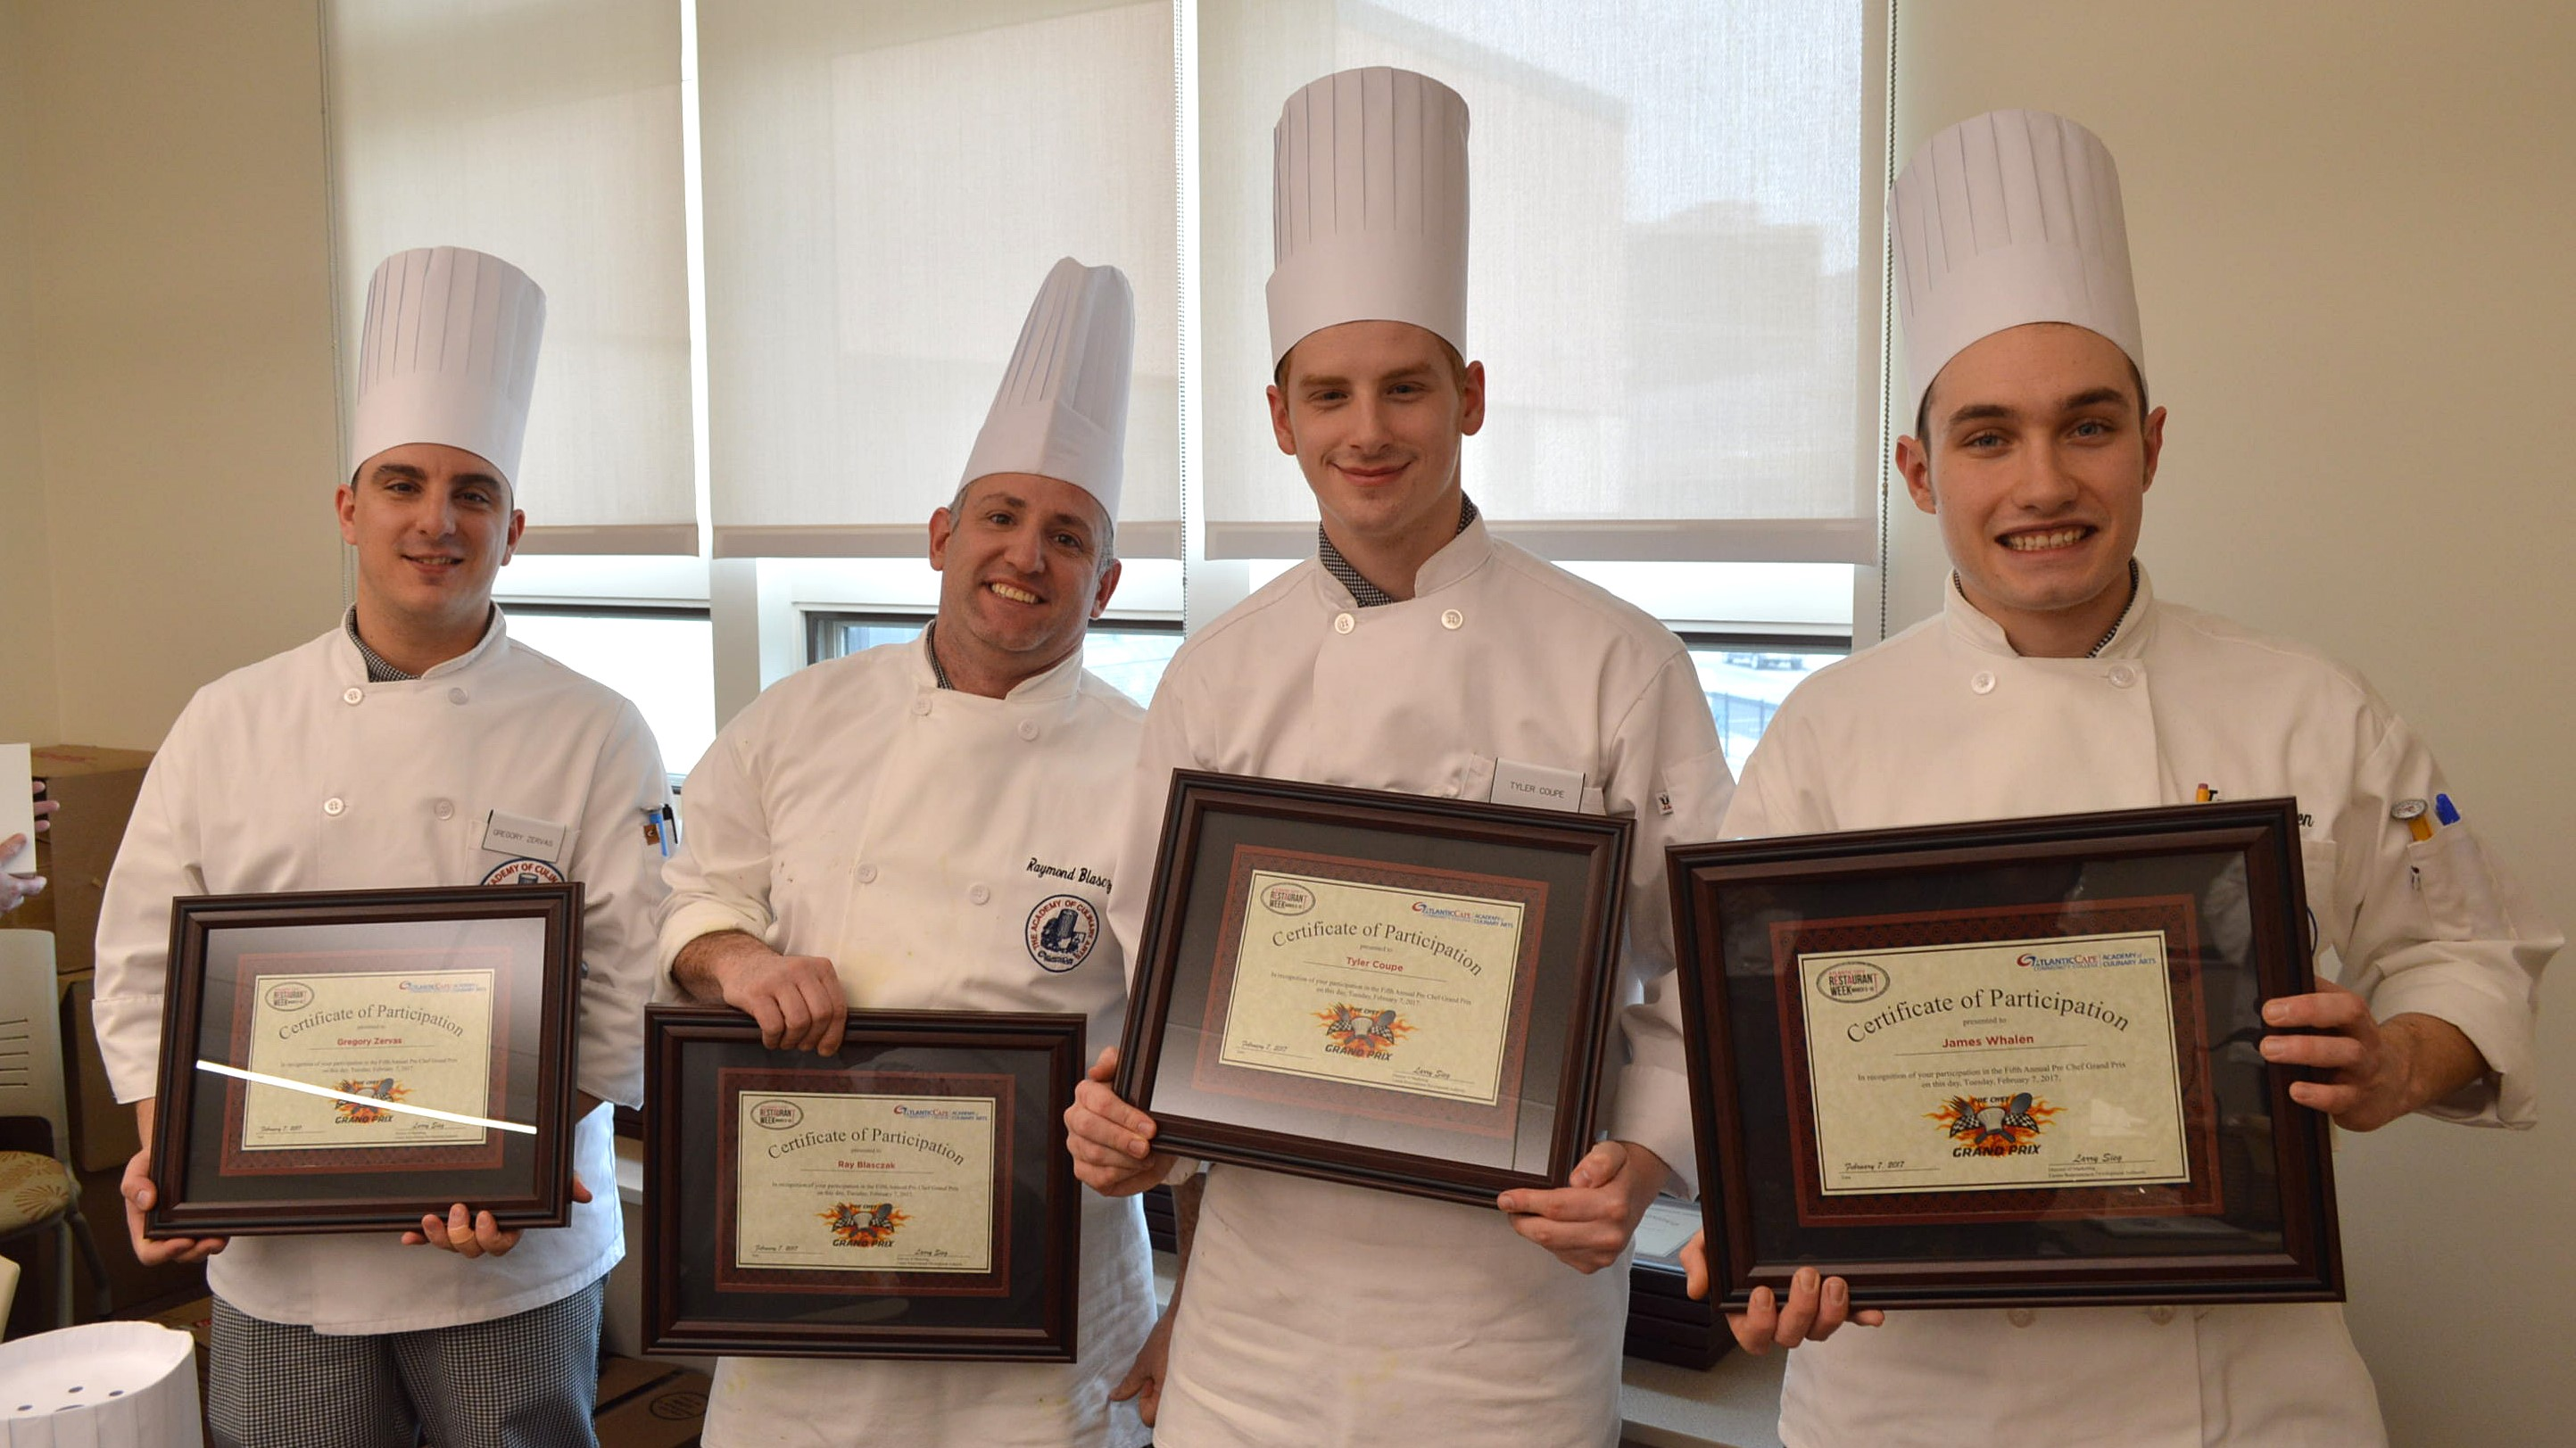 Chefs with participation certificates